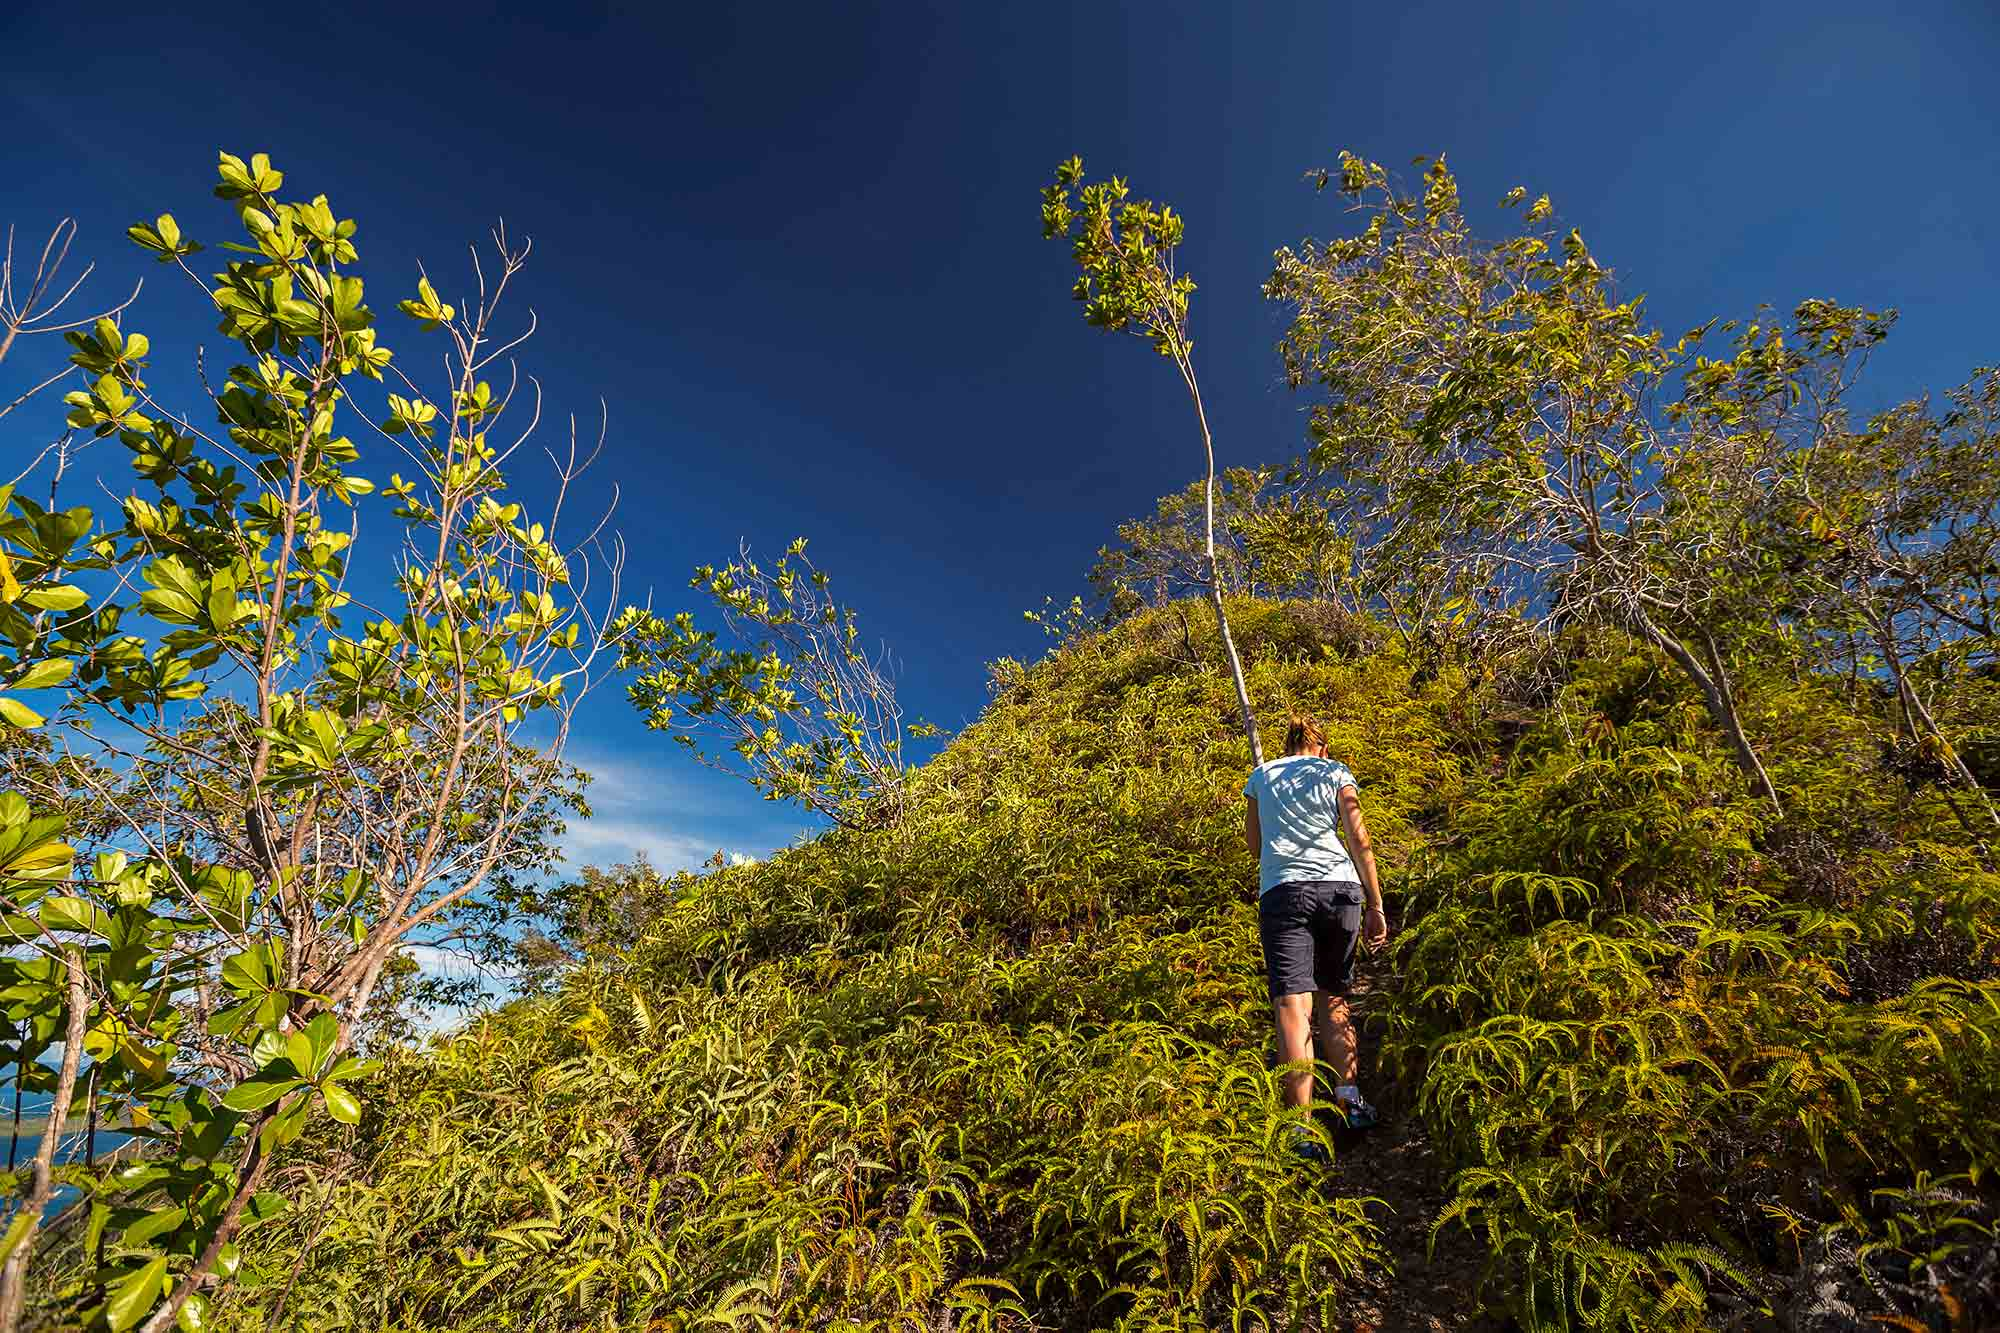 Hiking up the mountain on Cubadak island in West Sumatra, Indonesia. © Ulli Maier & Nisa Maier